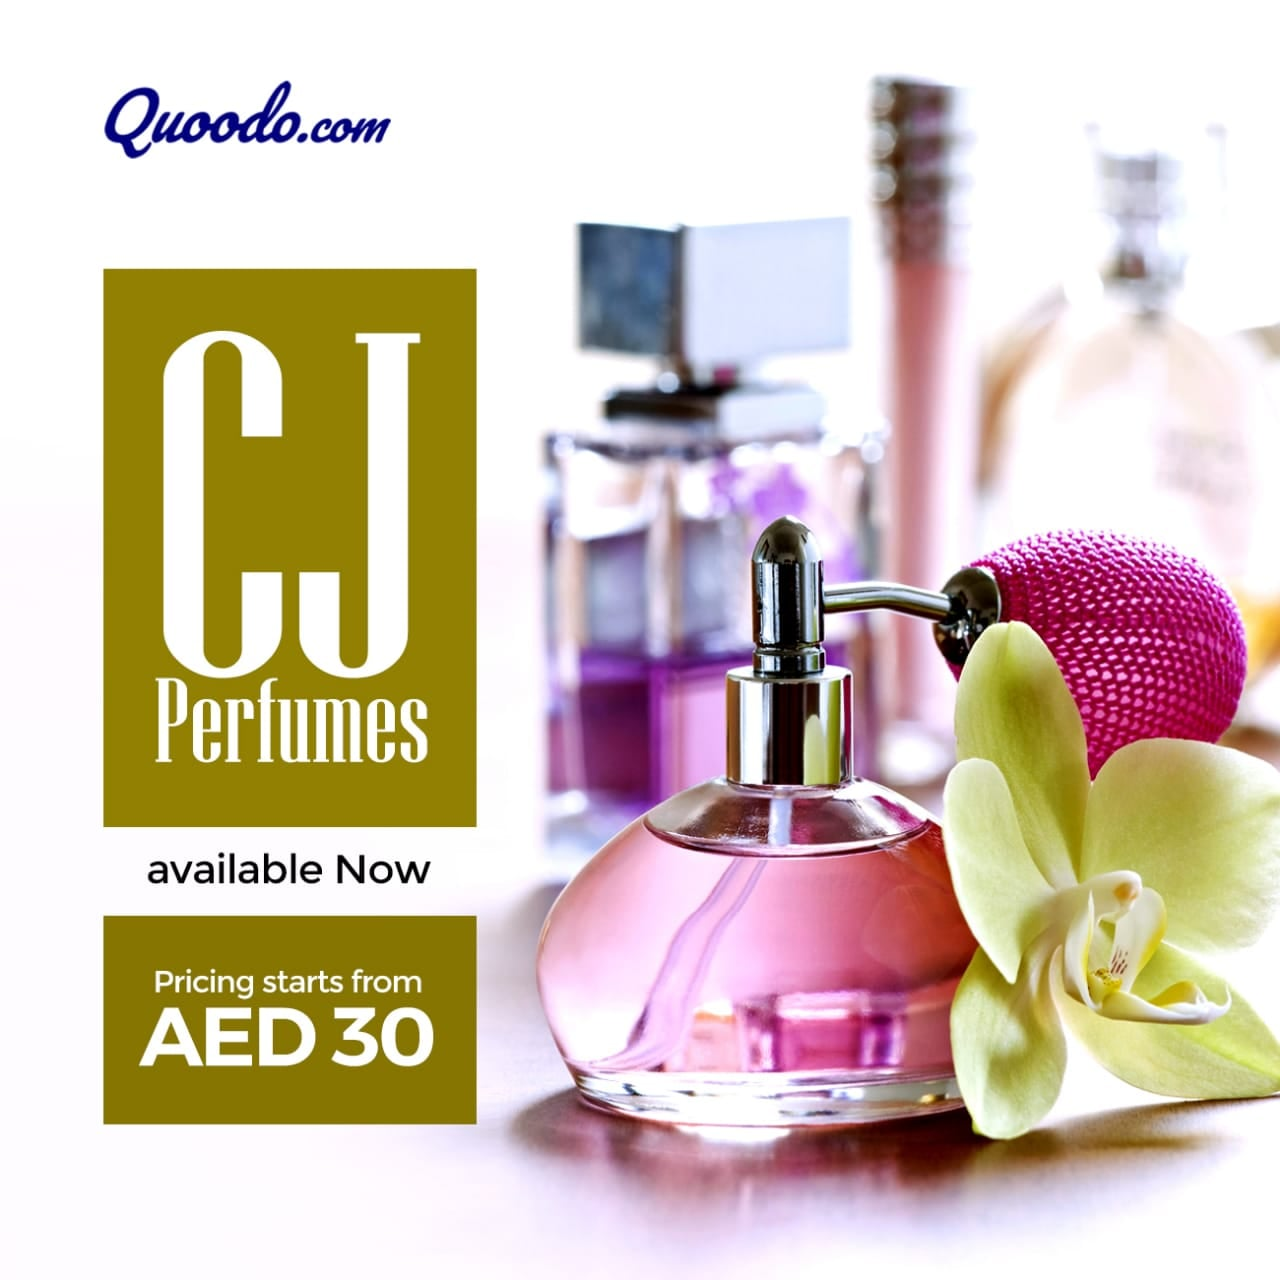 Buy The Best Quality Lifestyle Products Online From Quoodo